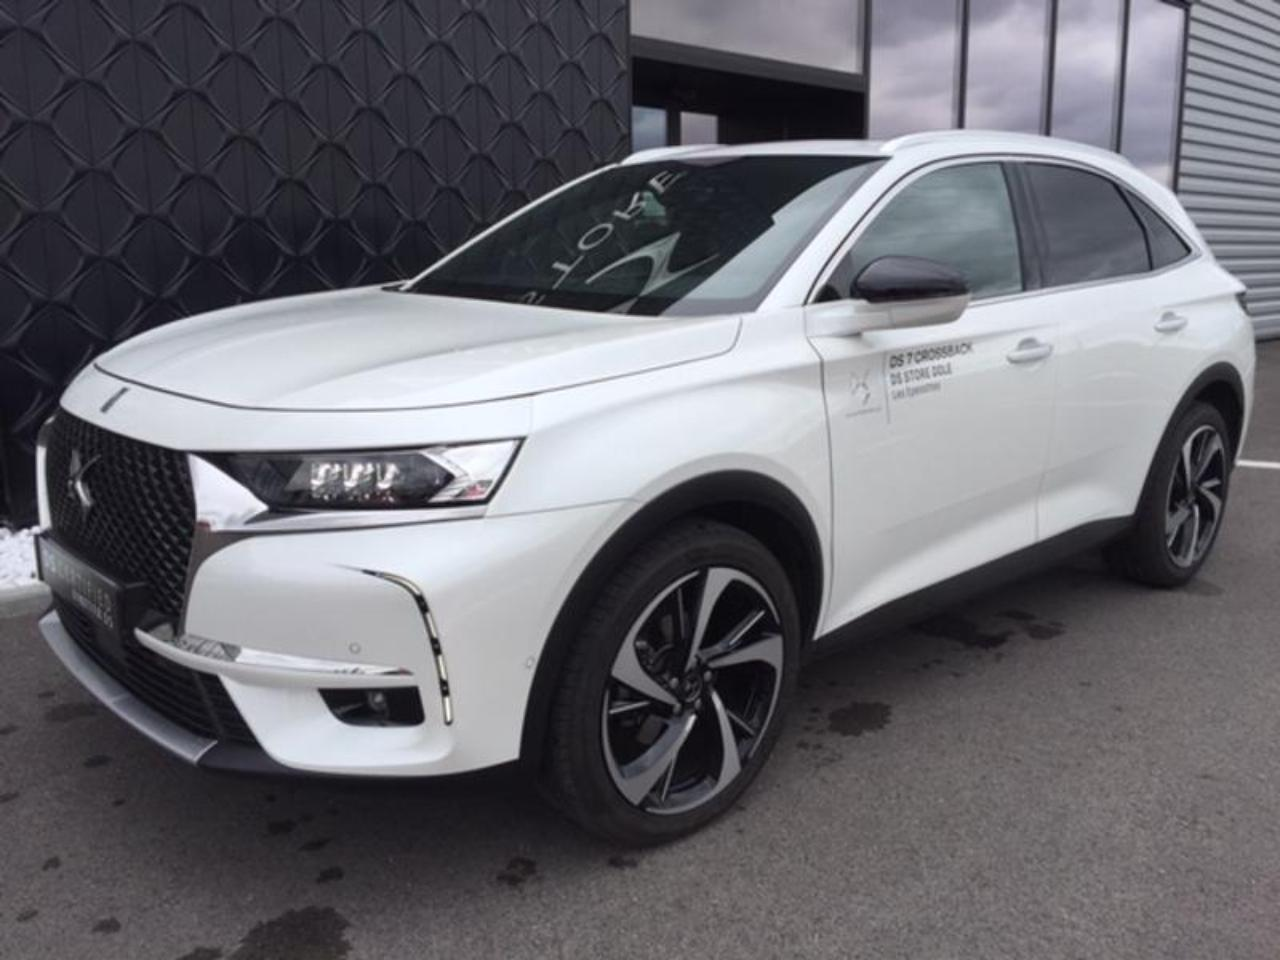 Ds DS 7 Crossback PureTech 225ch Grand Chic Automatique 12cv 125g